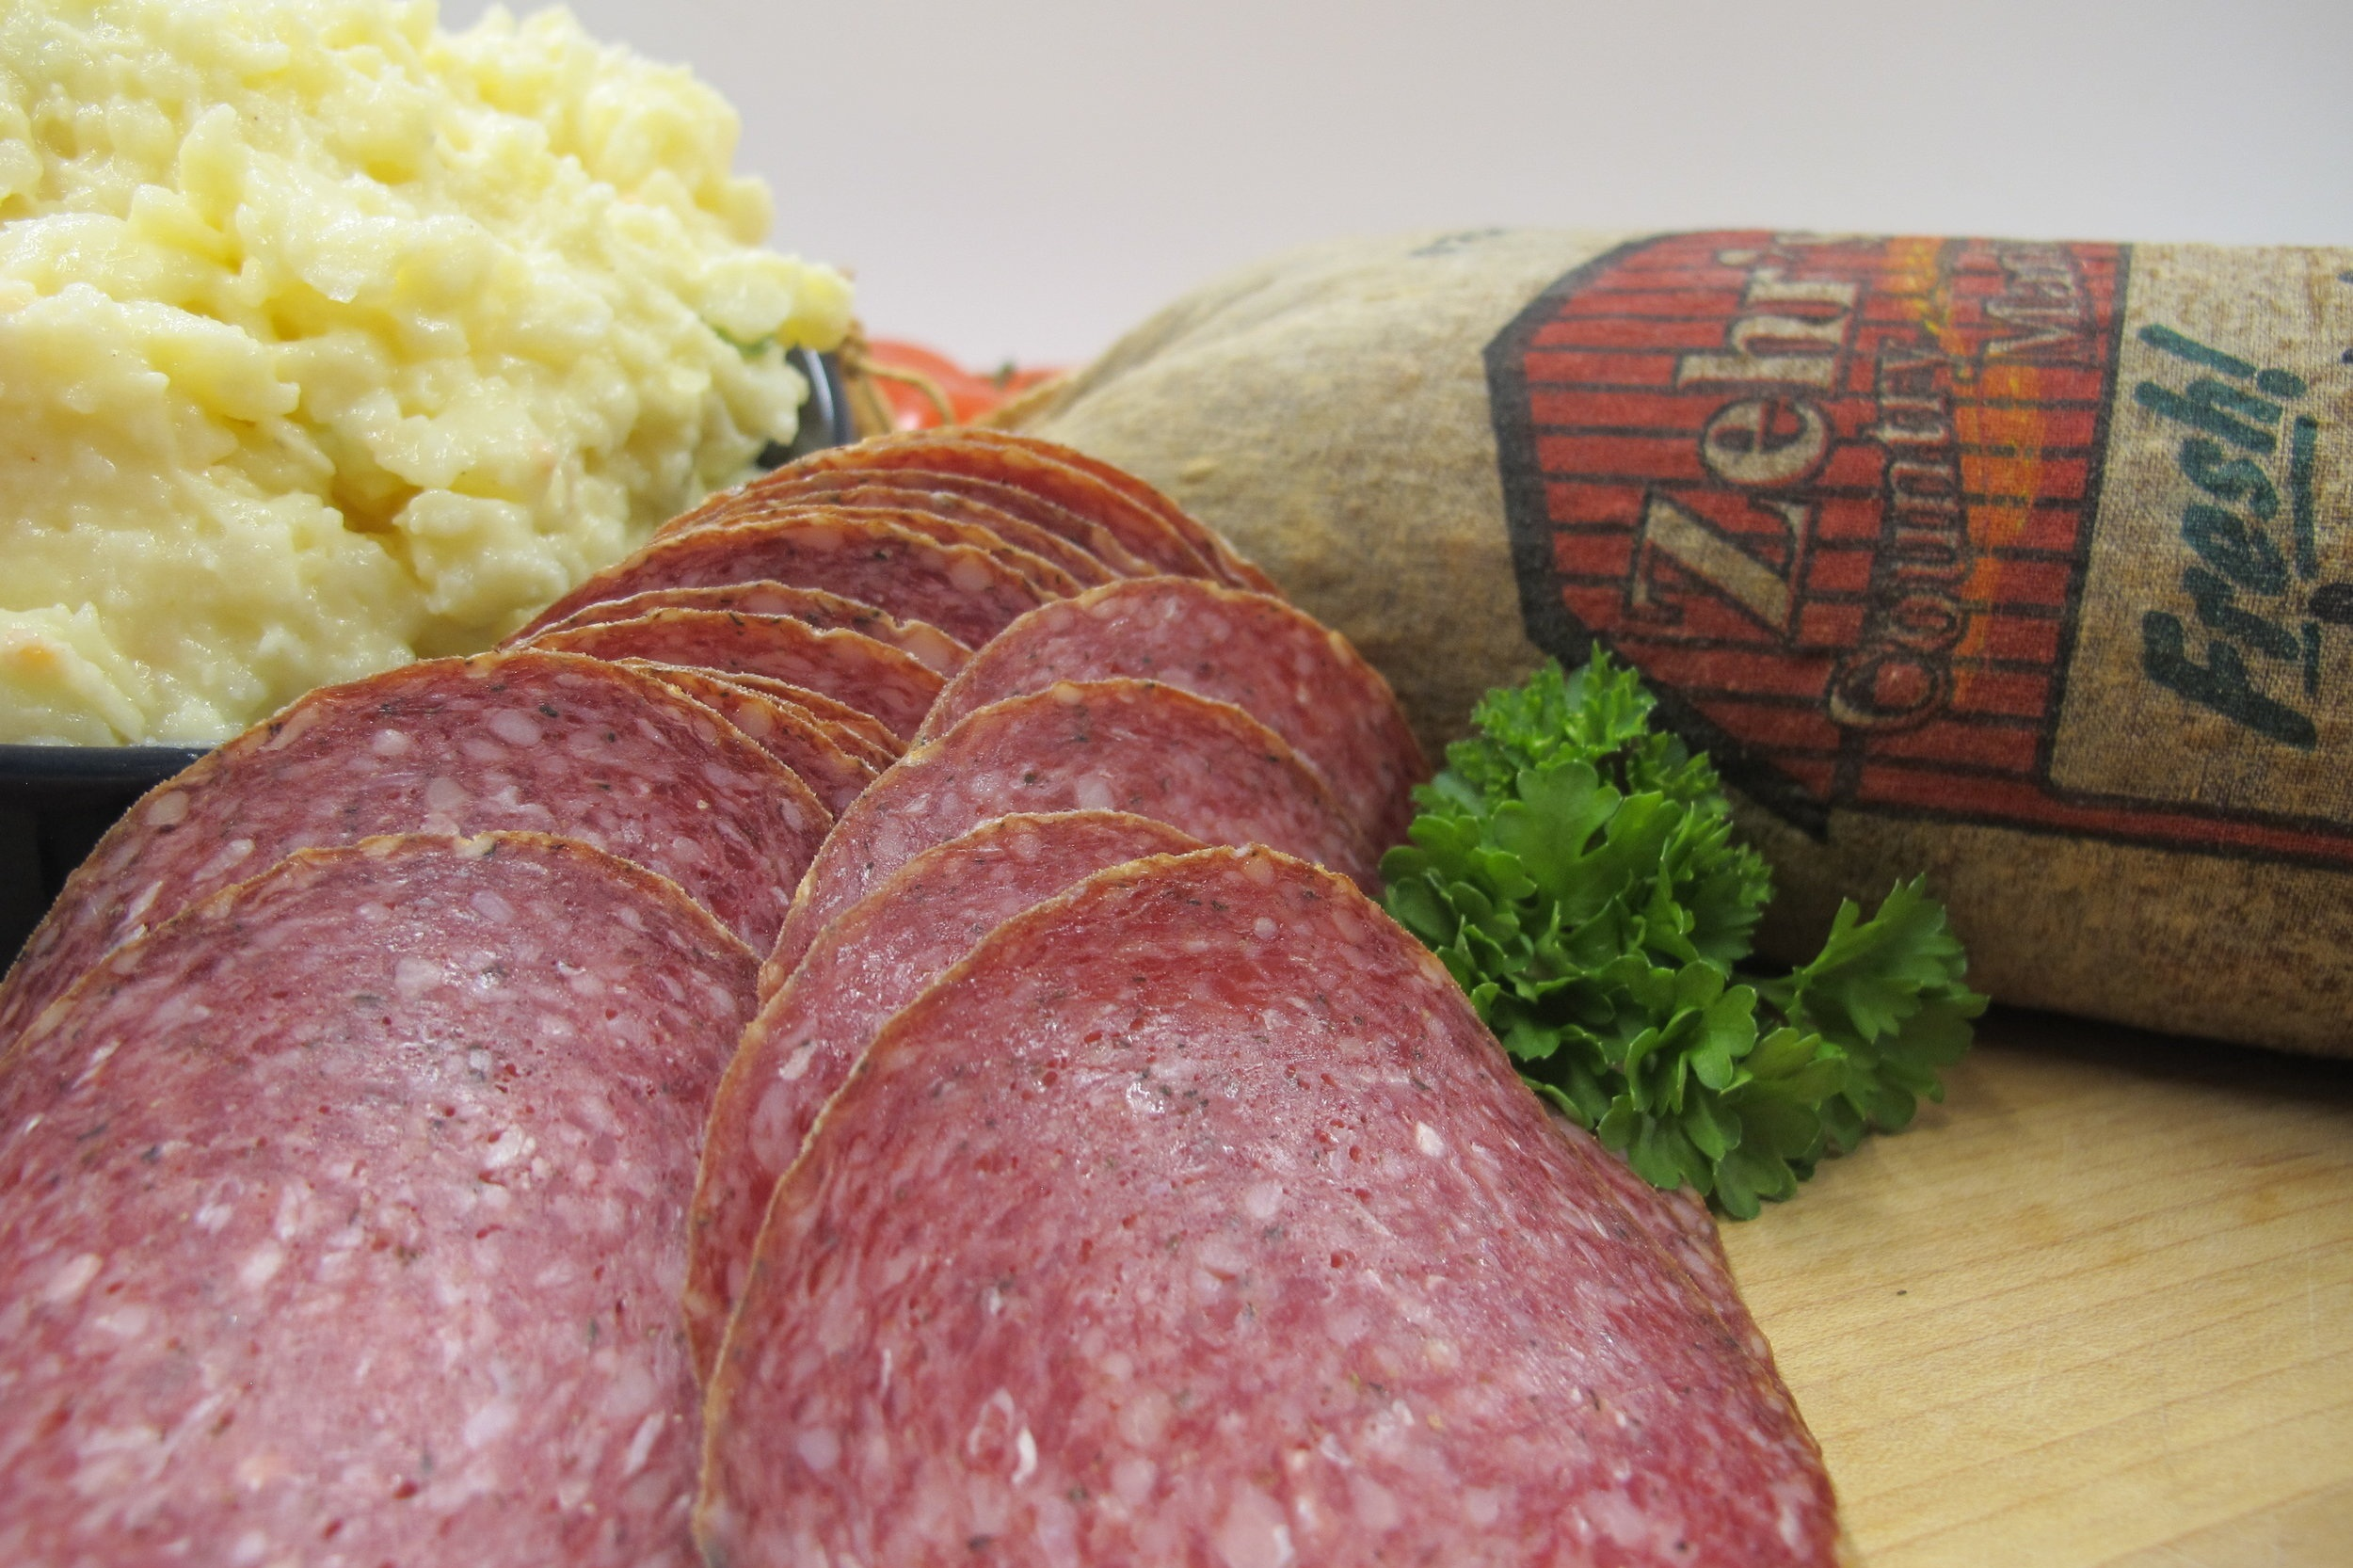 Summer Sausage - Homemade summer sausage! Sliced fresh or available by the stick